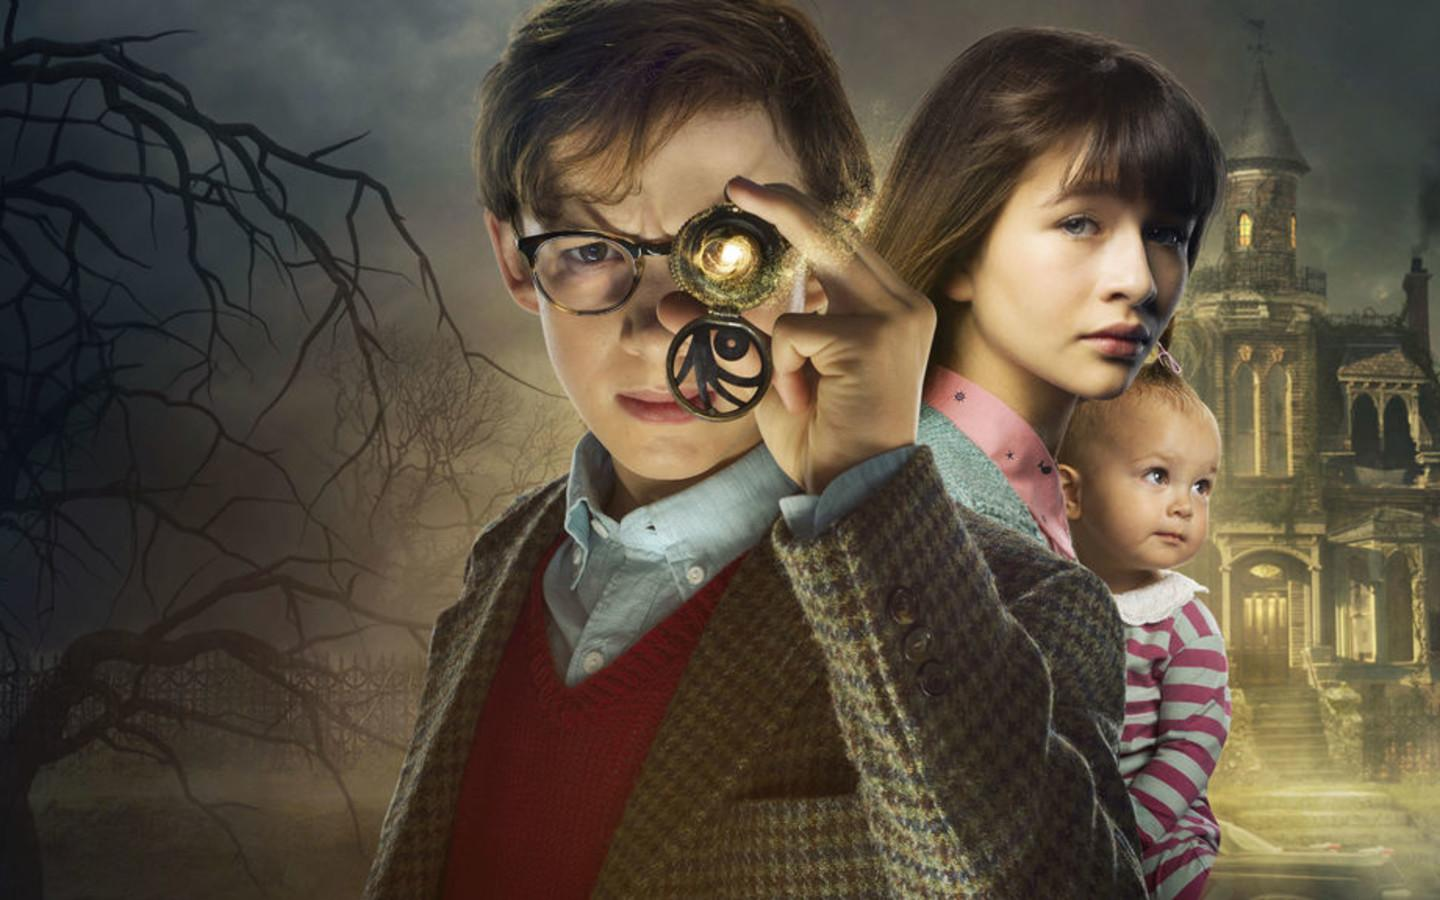 A Series Of Unfortunate Events Wallpapers Top Free A Series Of Unfortunate Events Backgrounds Wallpaperaccess